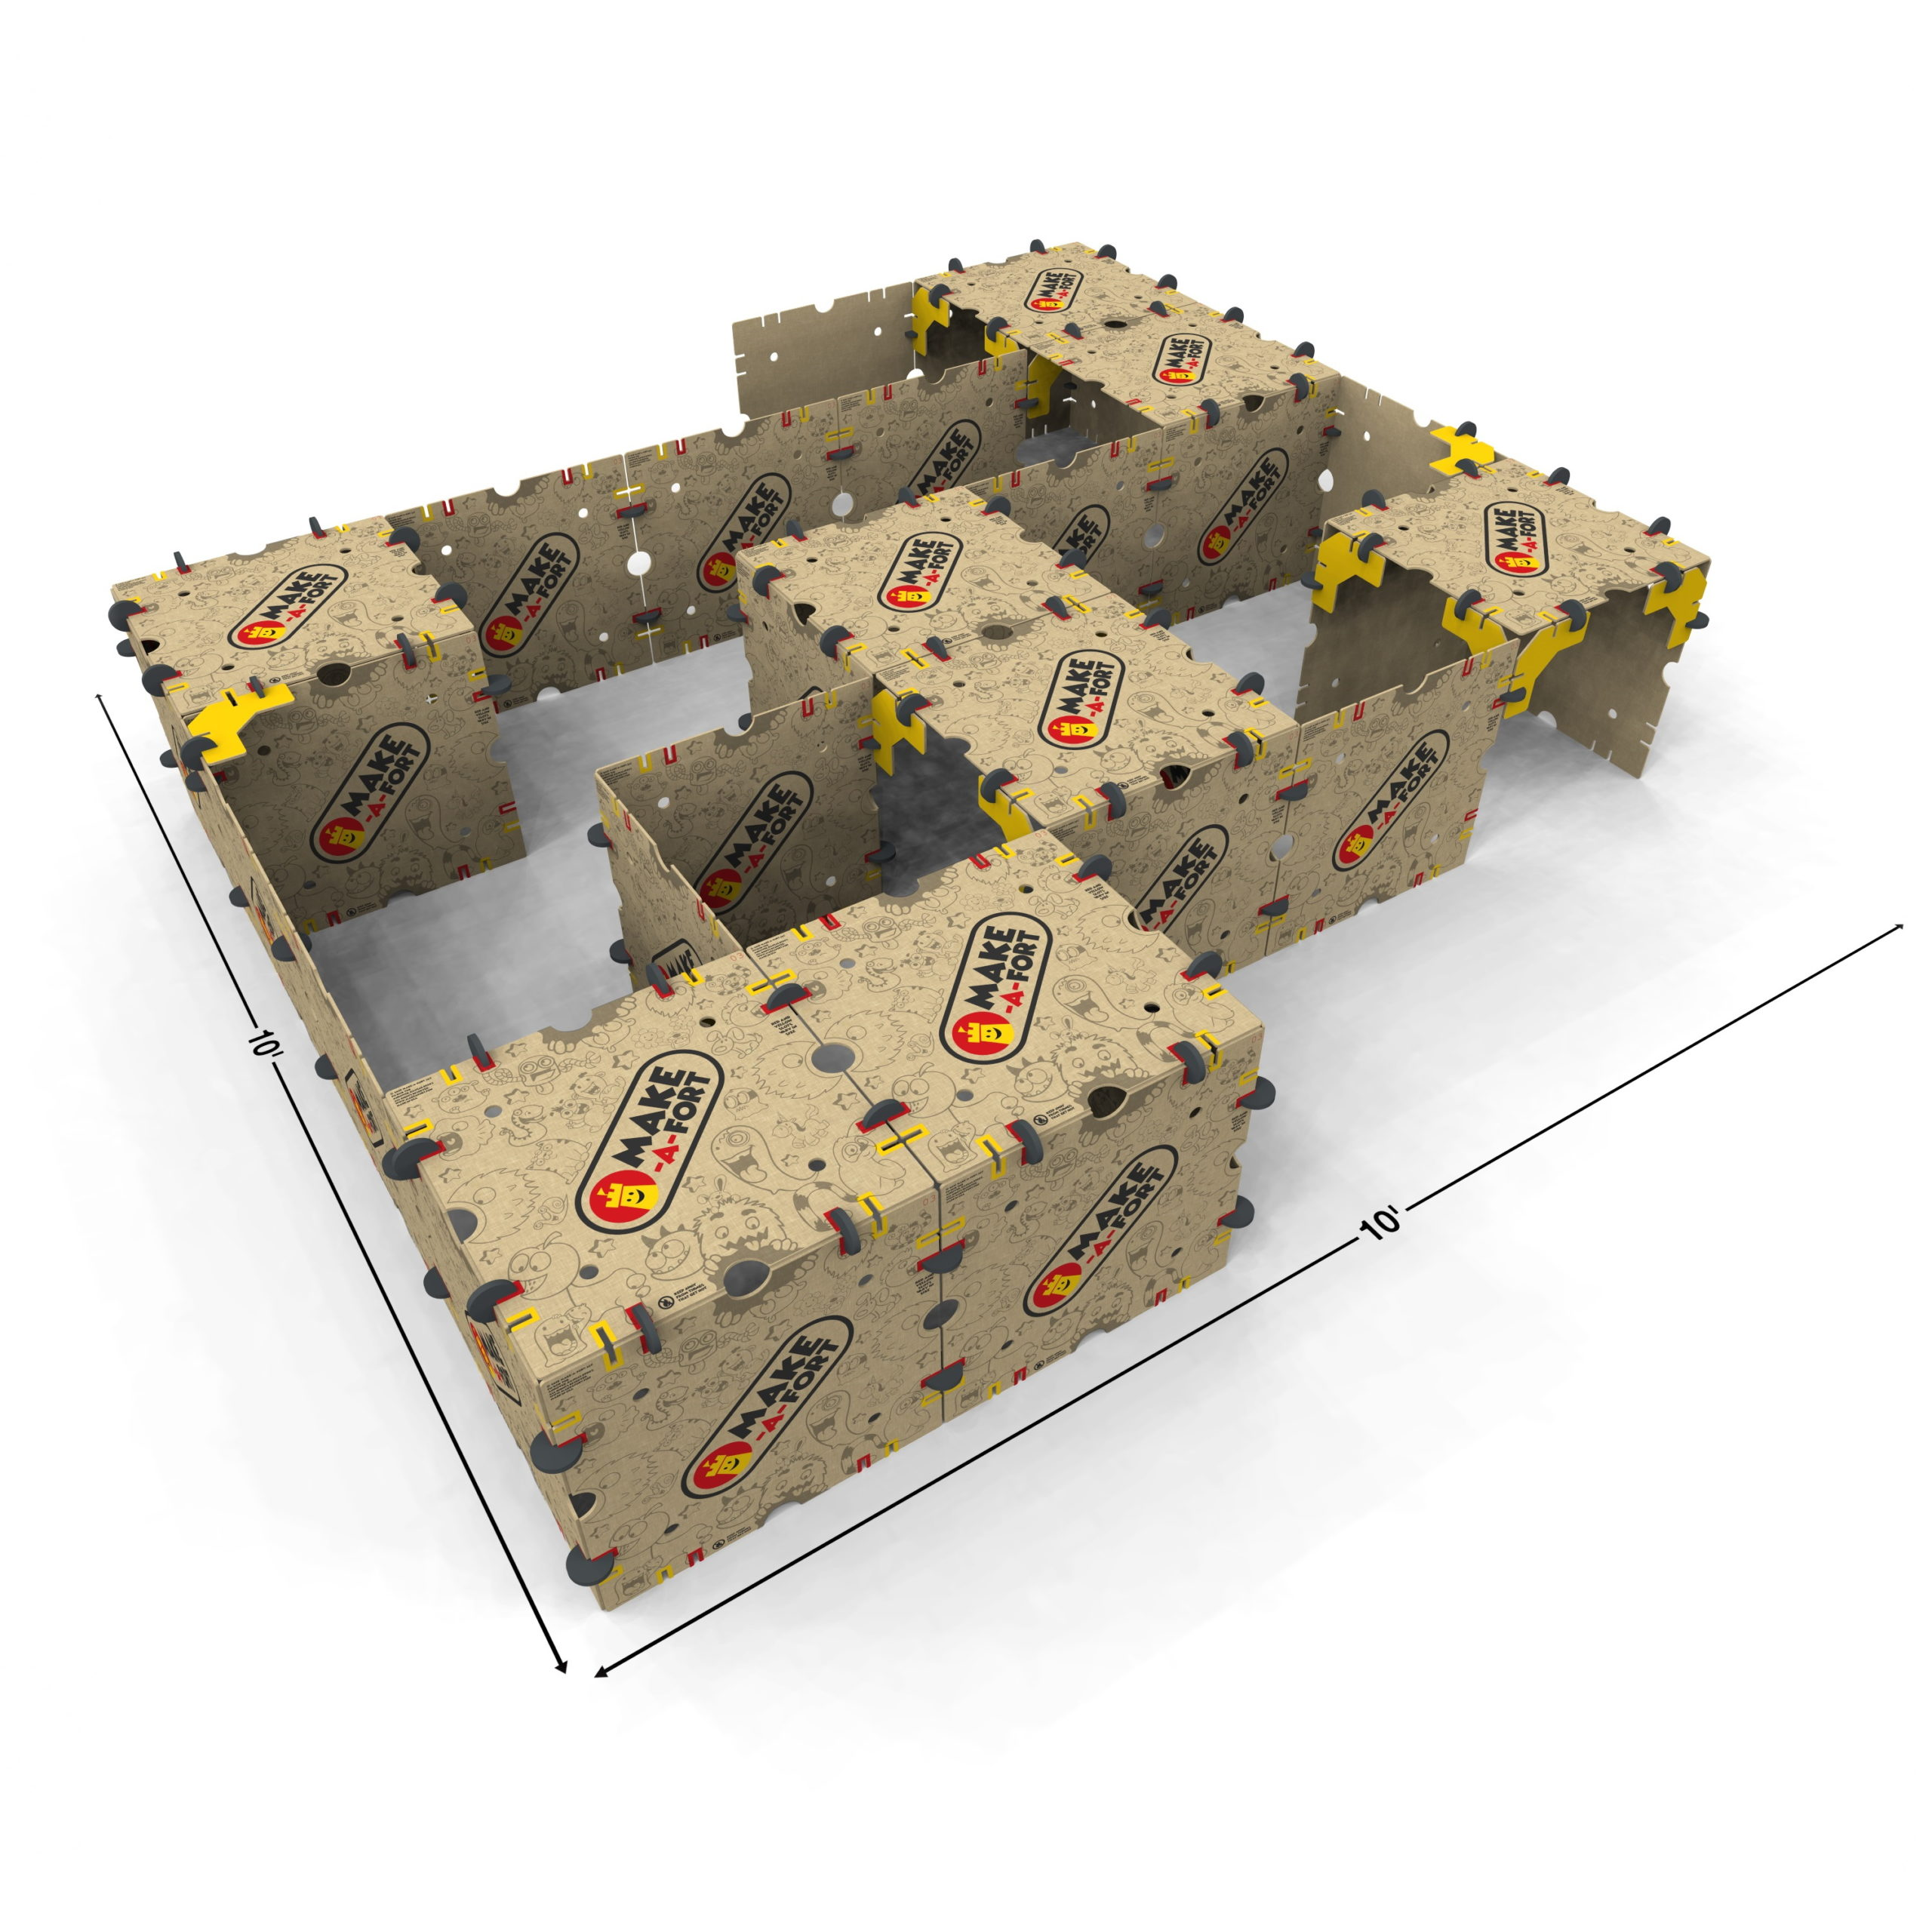 A large maze built with Make-A-Fort Build Kits